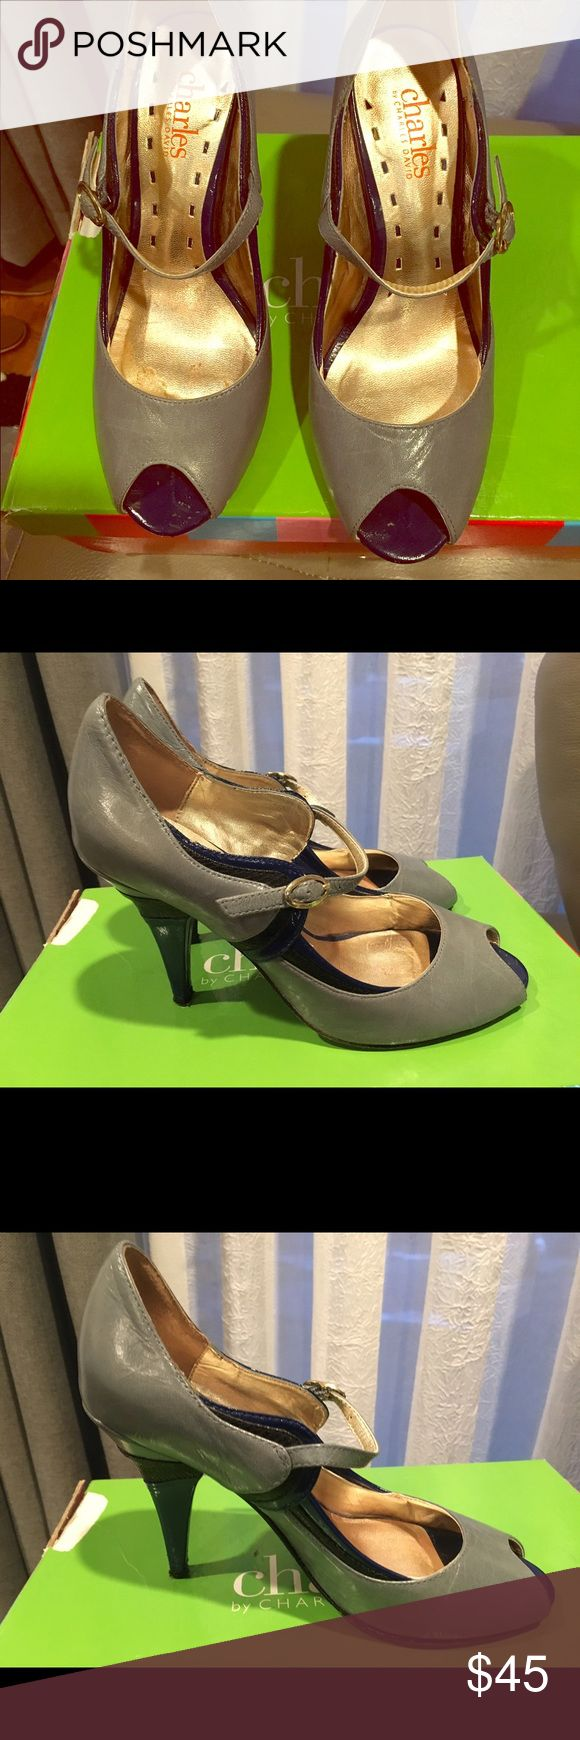 Charles by Charles David Brava Navy Heels Charles by Charles David Brava pumps in Navy/grey Charles by Charles David Shoes Heels